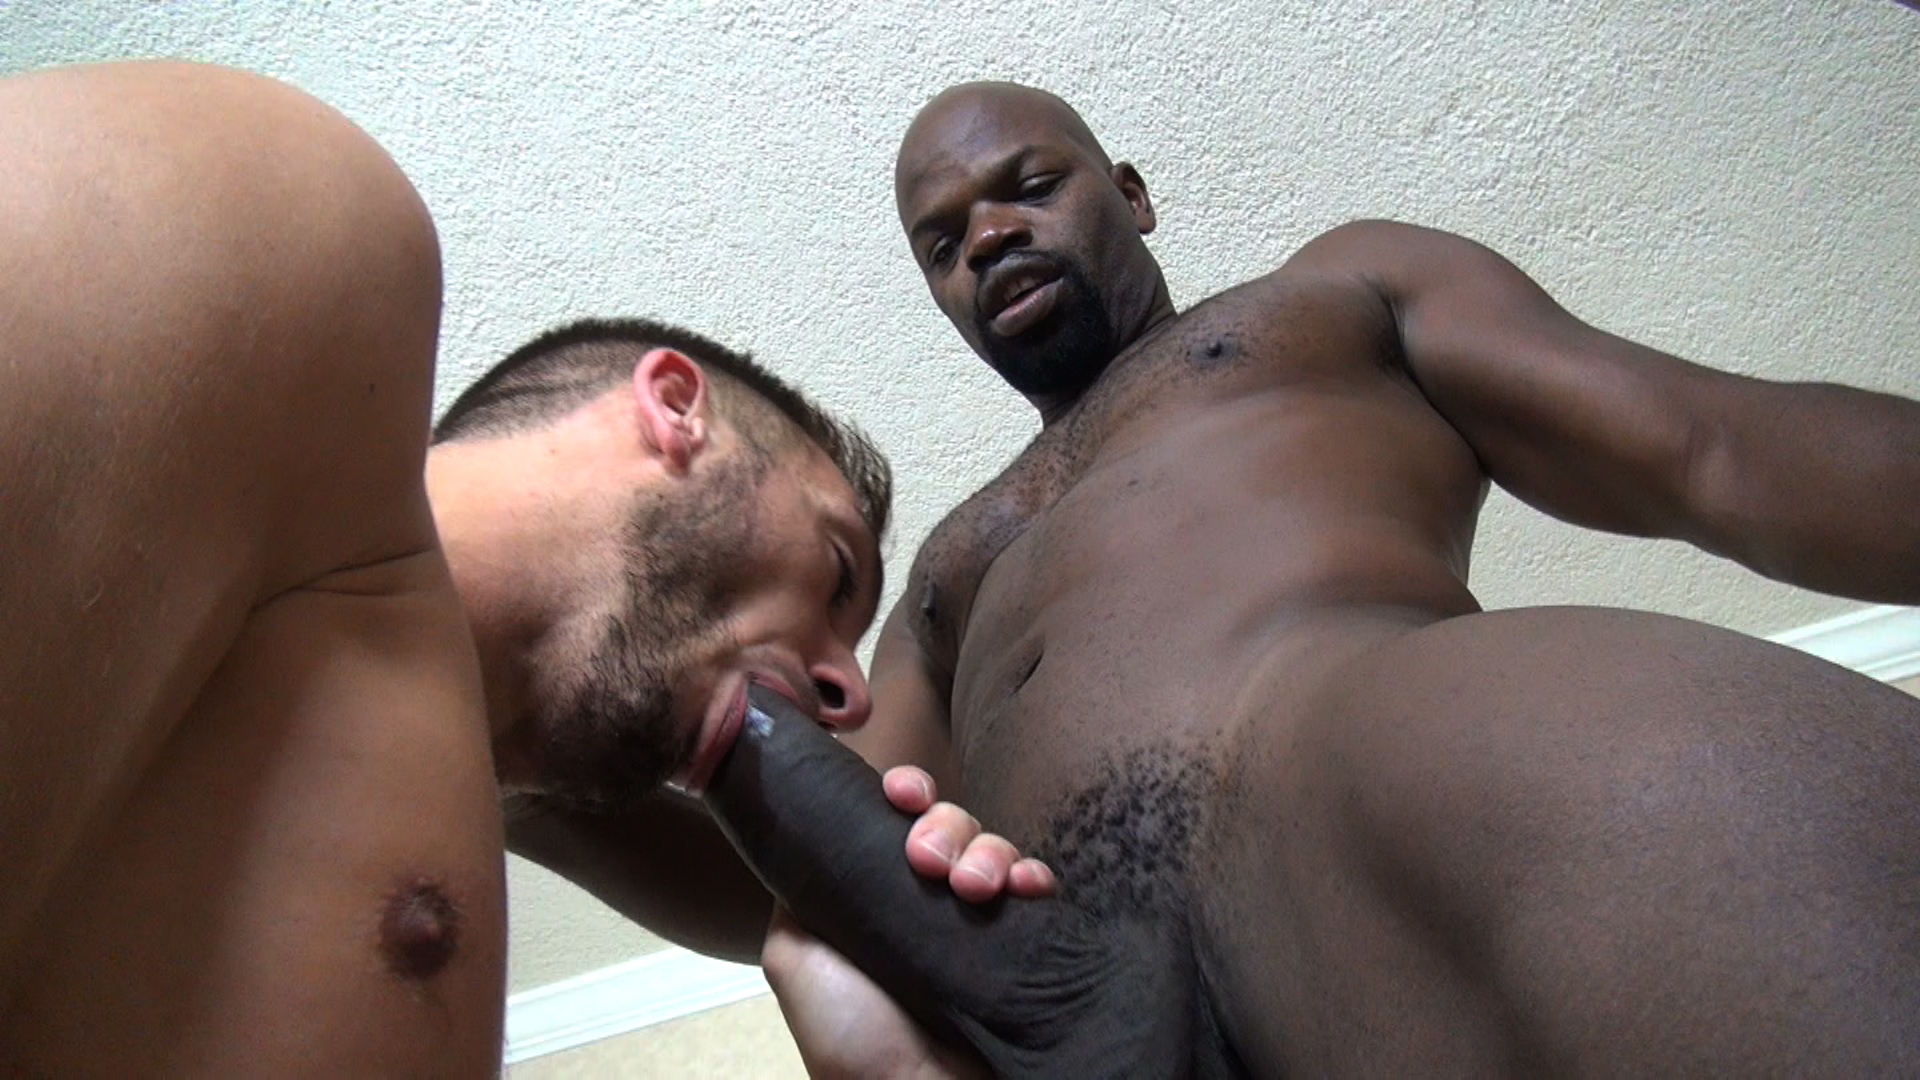 Xxx interacial gay sex